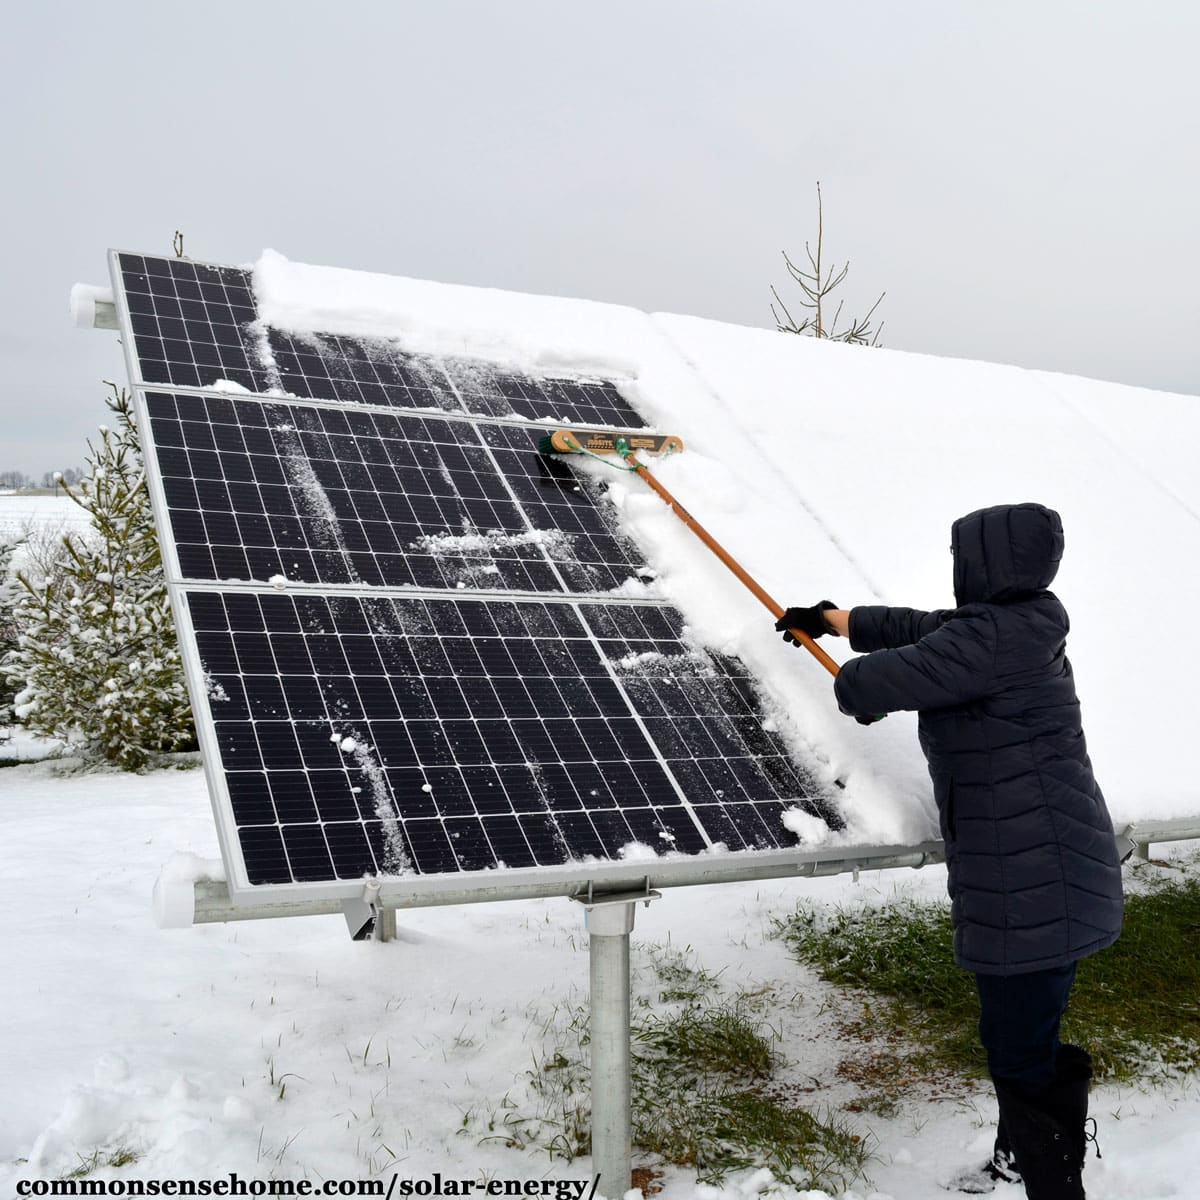 clearing snow from solar panels